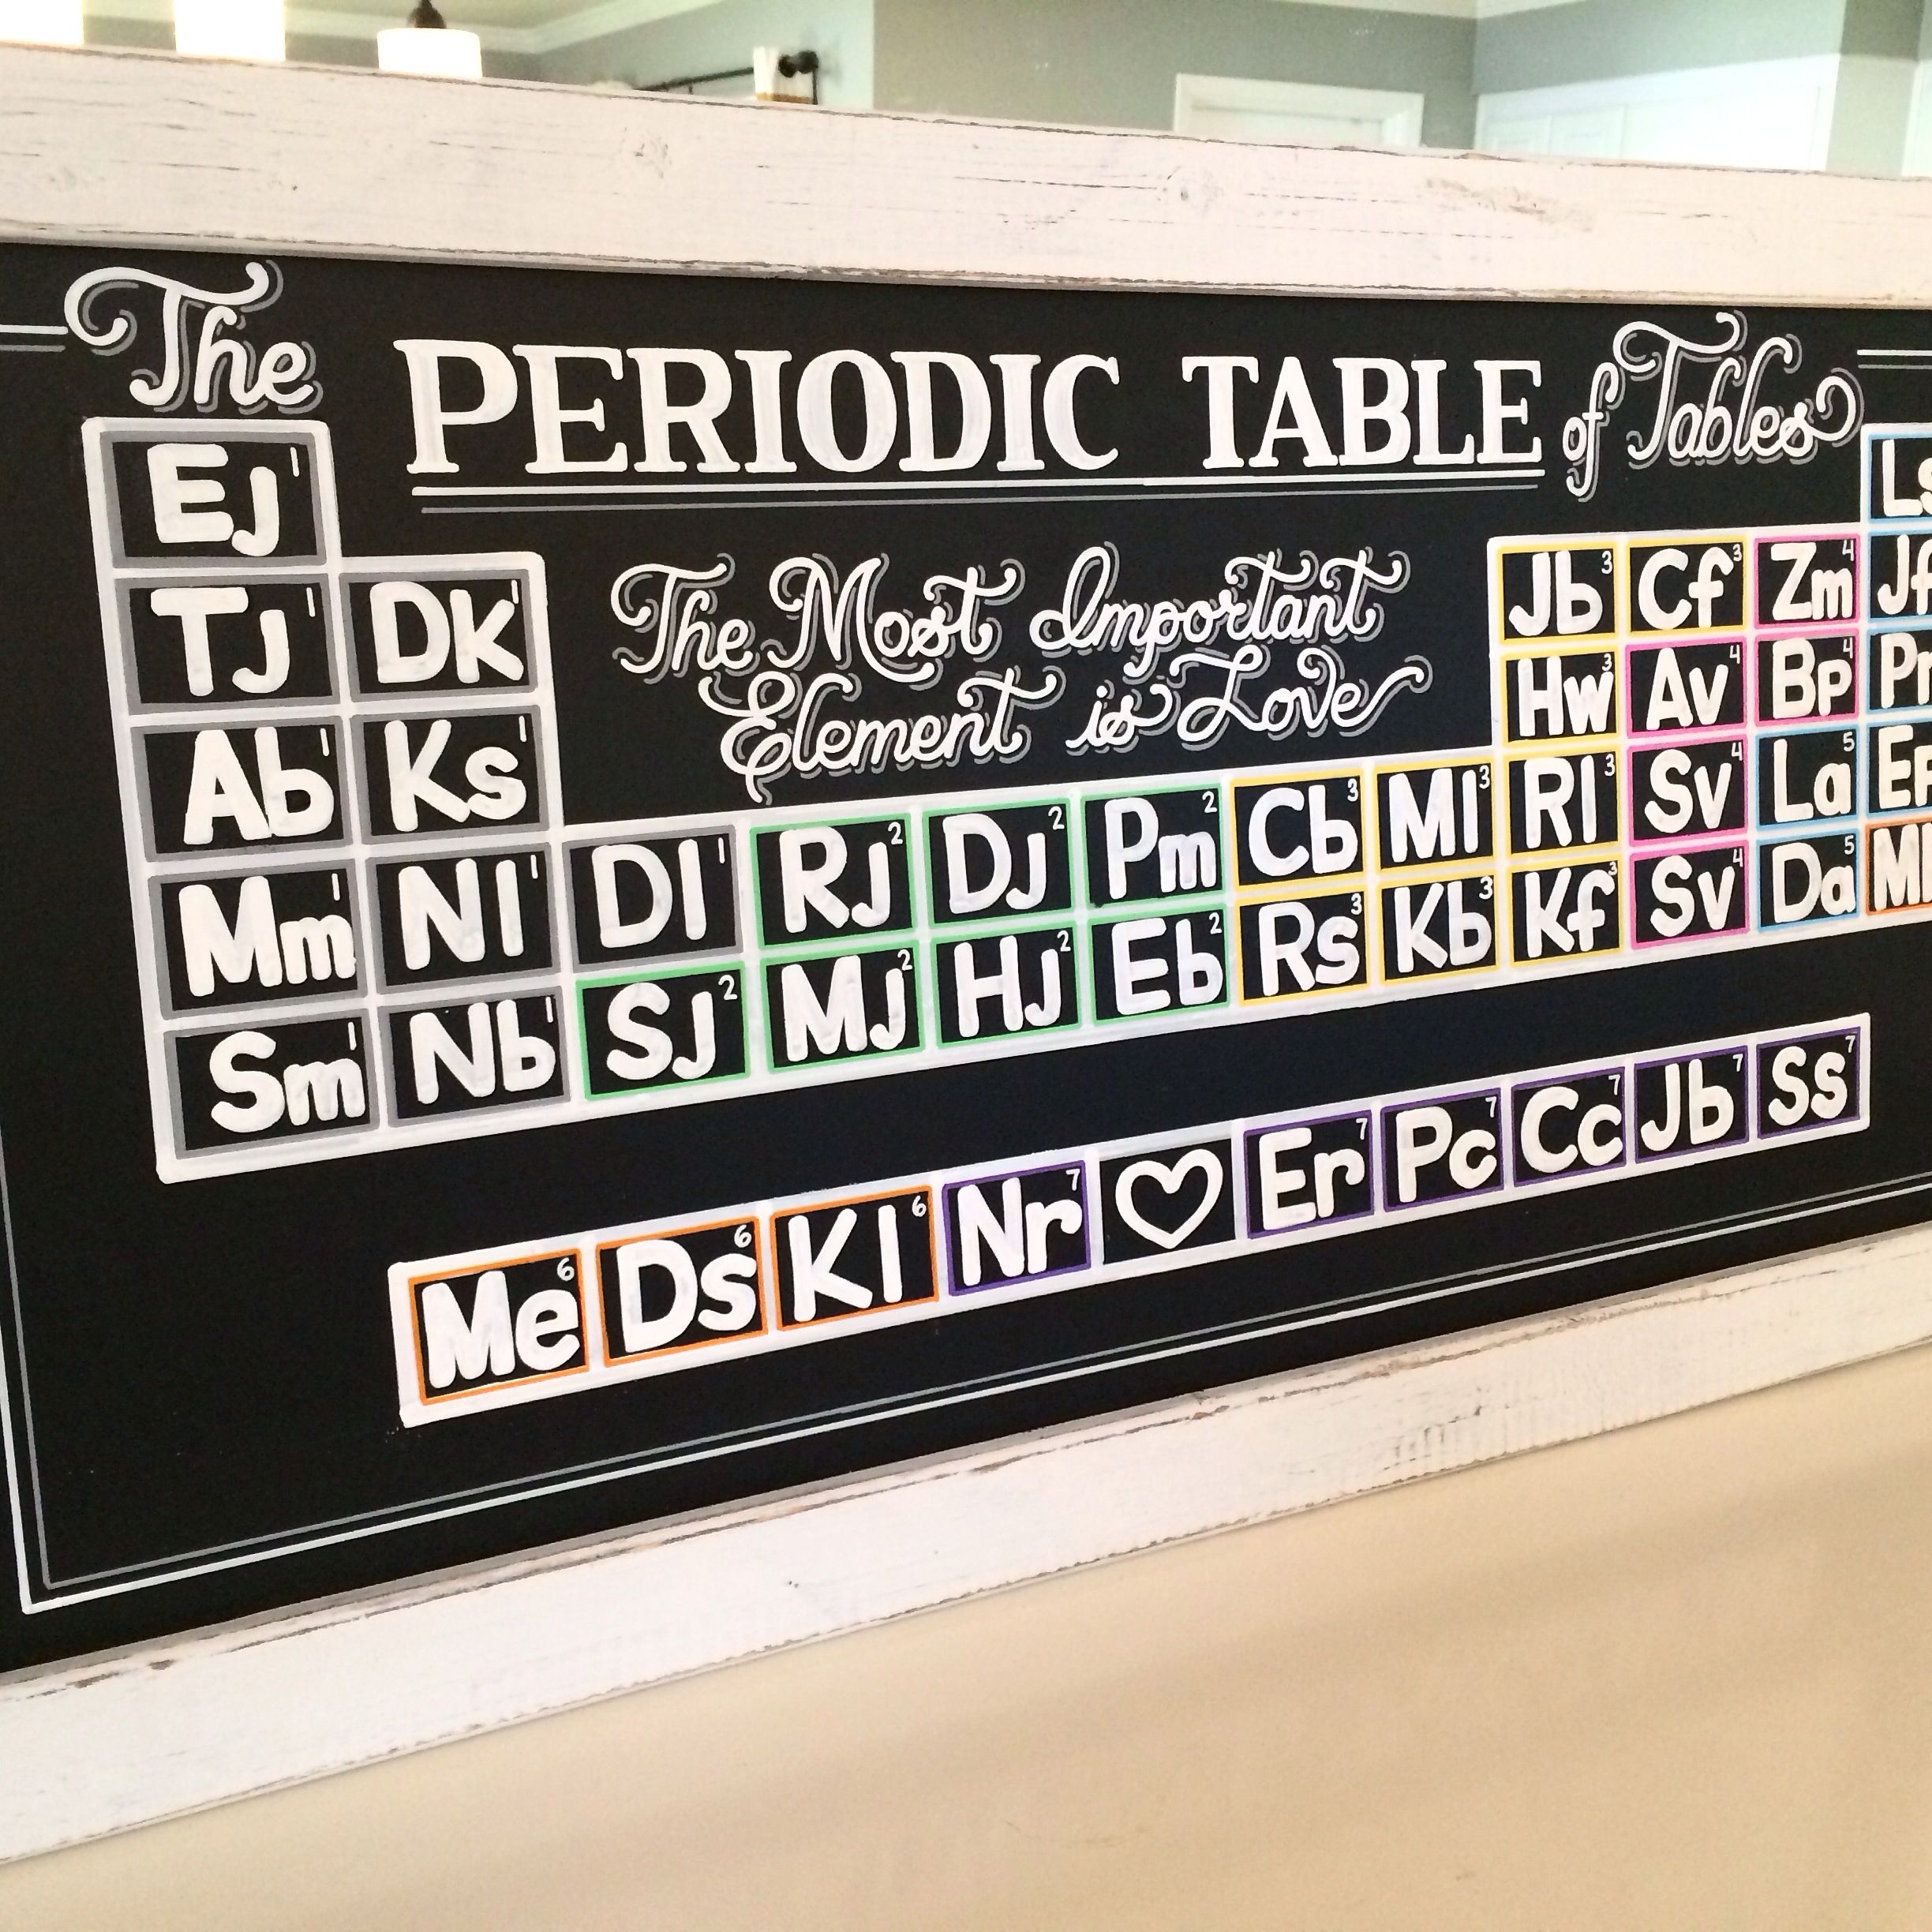 Periodic Table Wedding Seating Chart By Handwritten Phoenix Handwrittenart yahoo twenty6designs